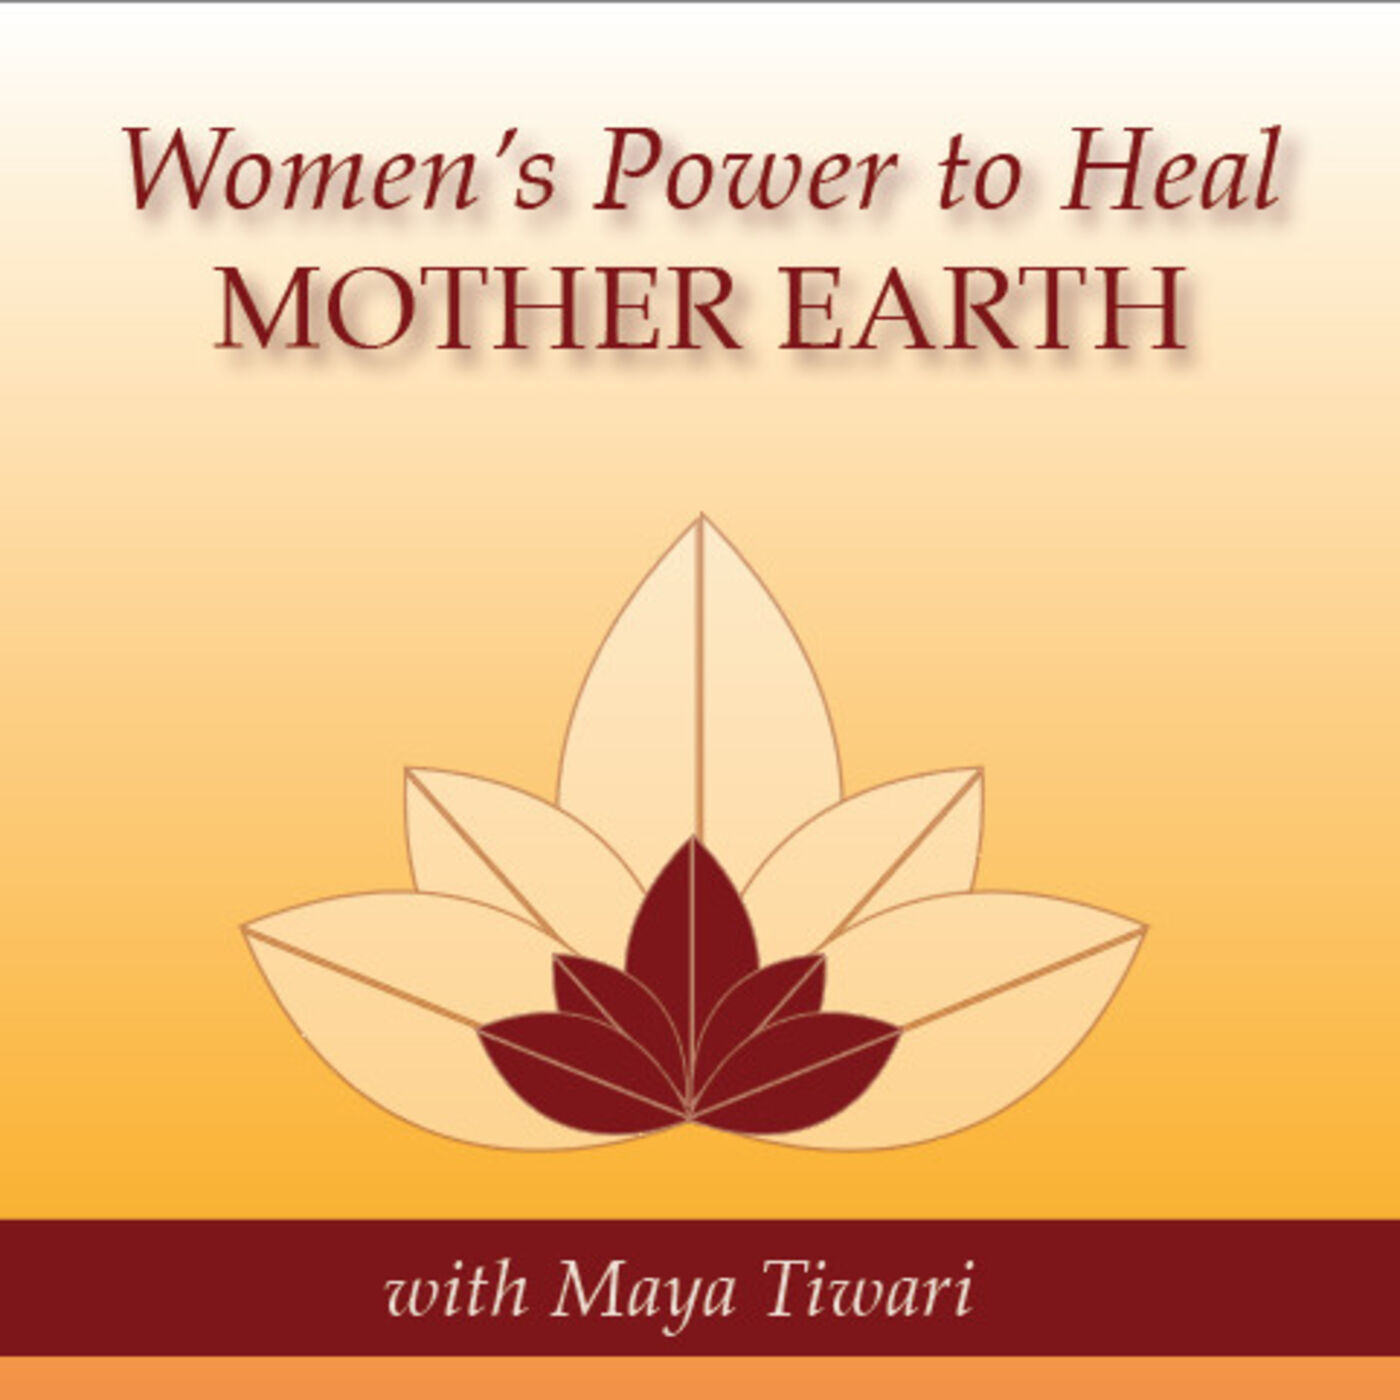 Women's Power to Heal Mother Earth!